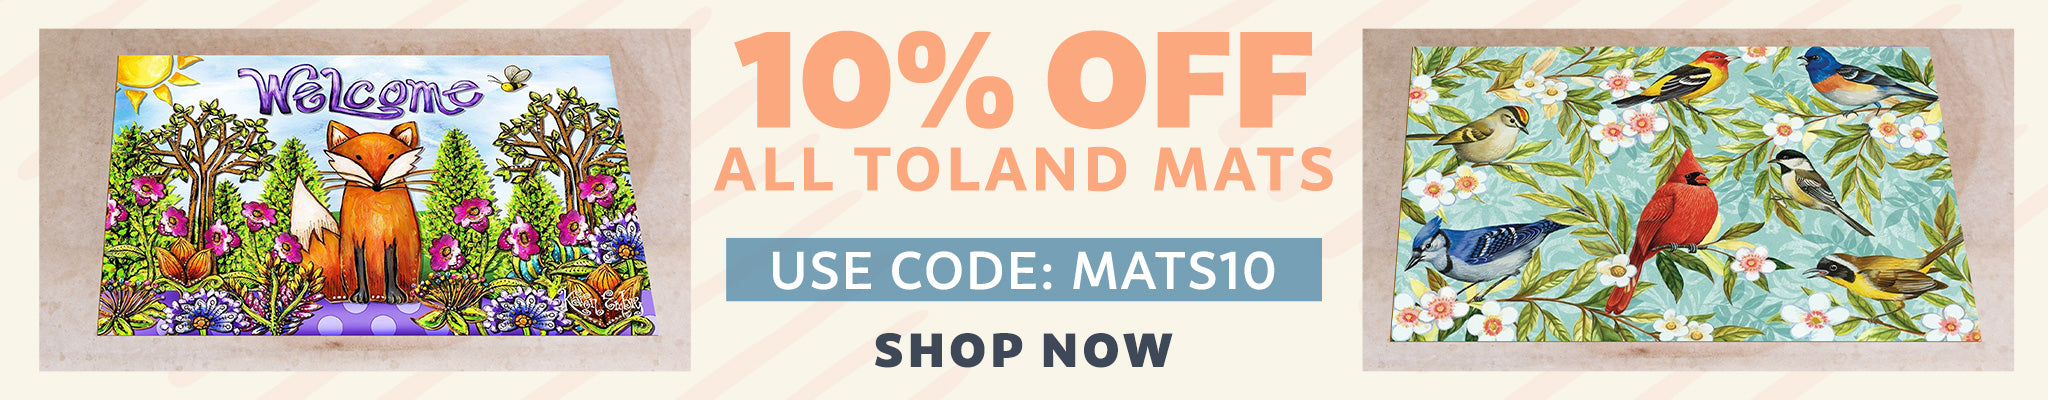 10% OFF All Toland Mats | Use code: MATS10 | Shop Now